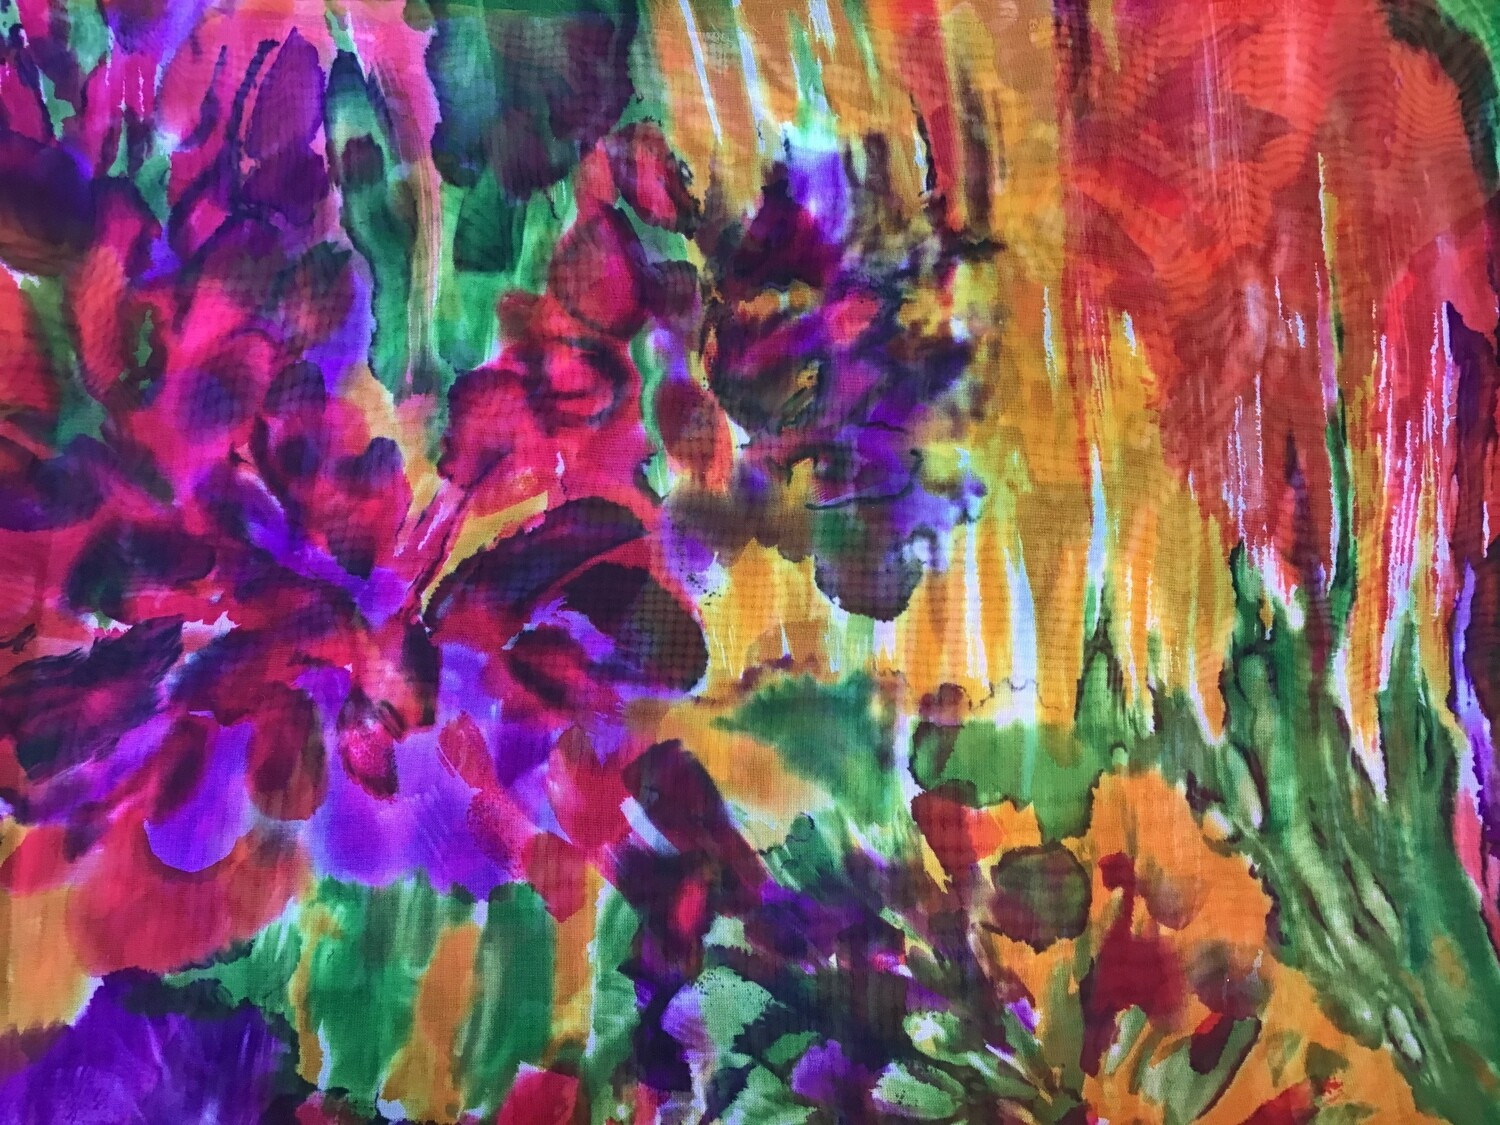 Fabric: Sheer / Colorful